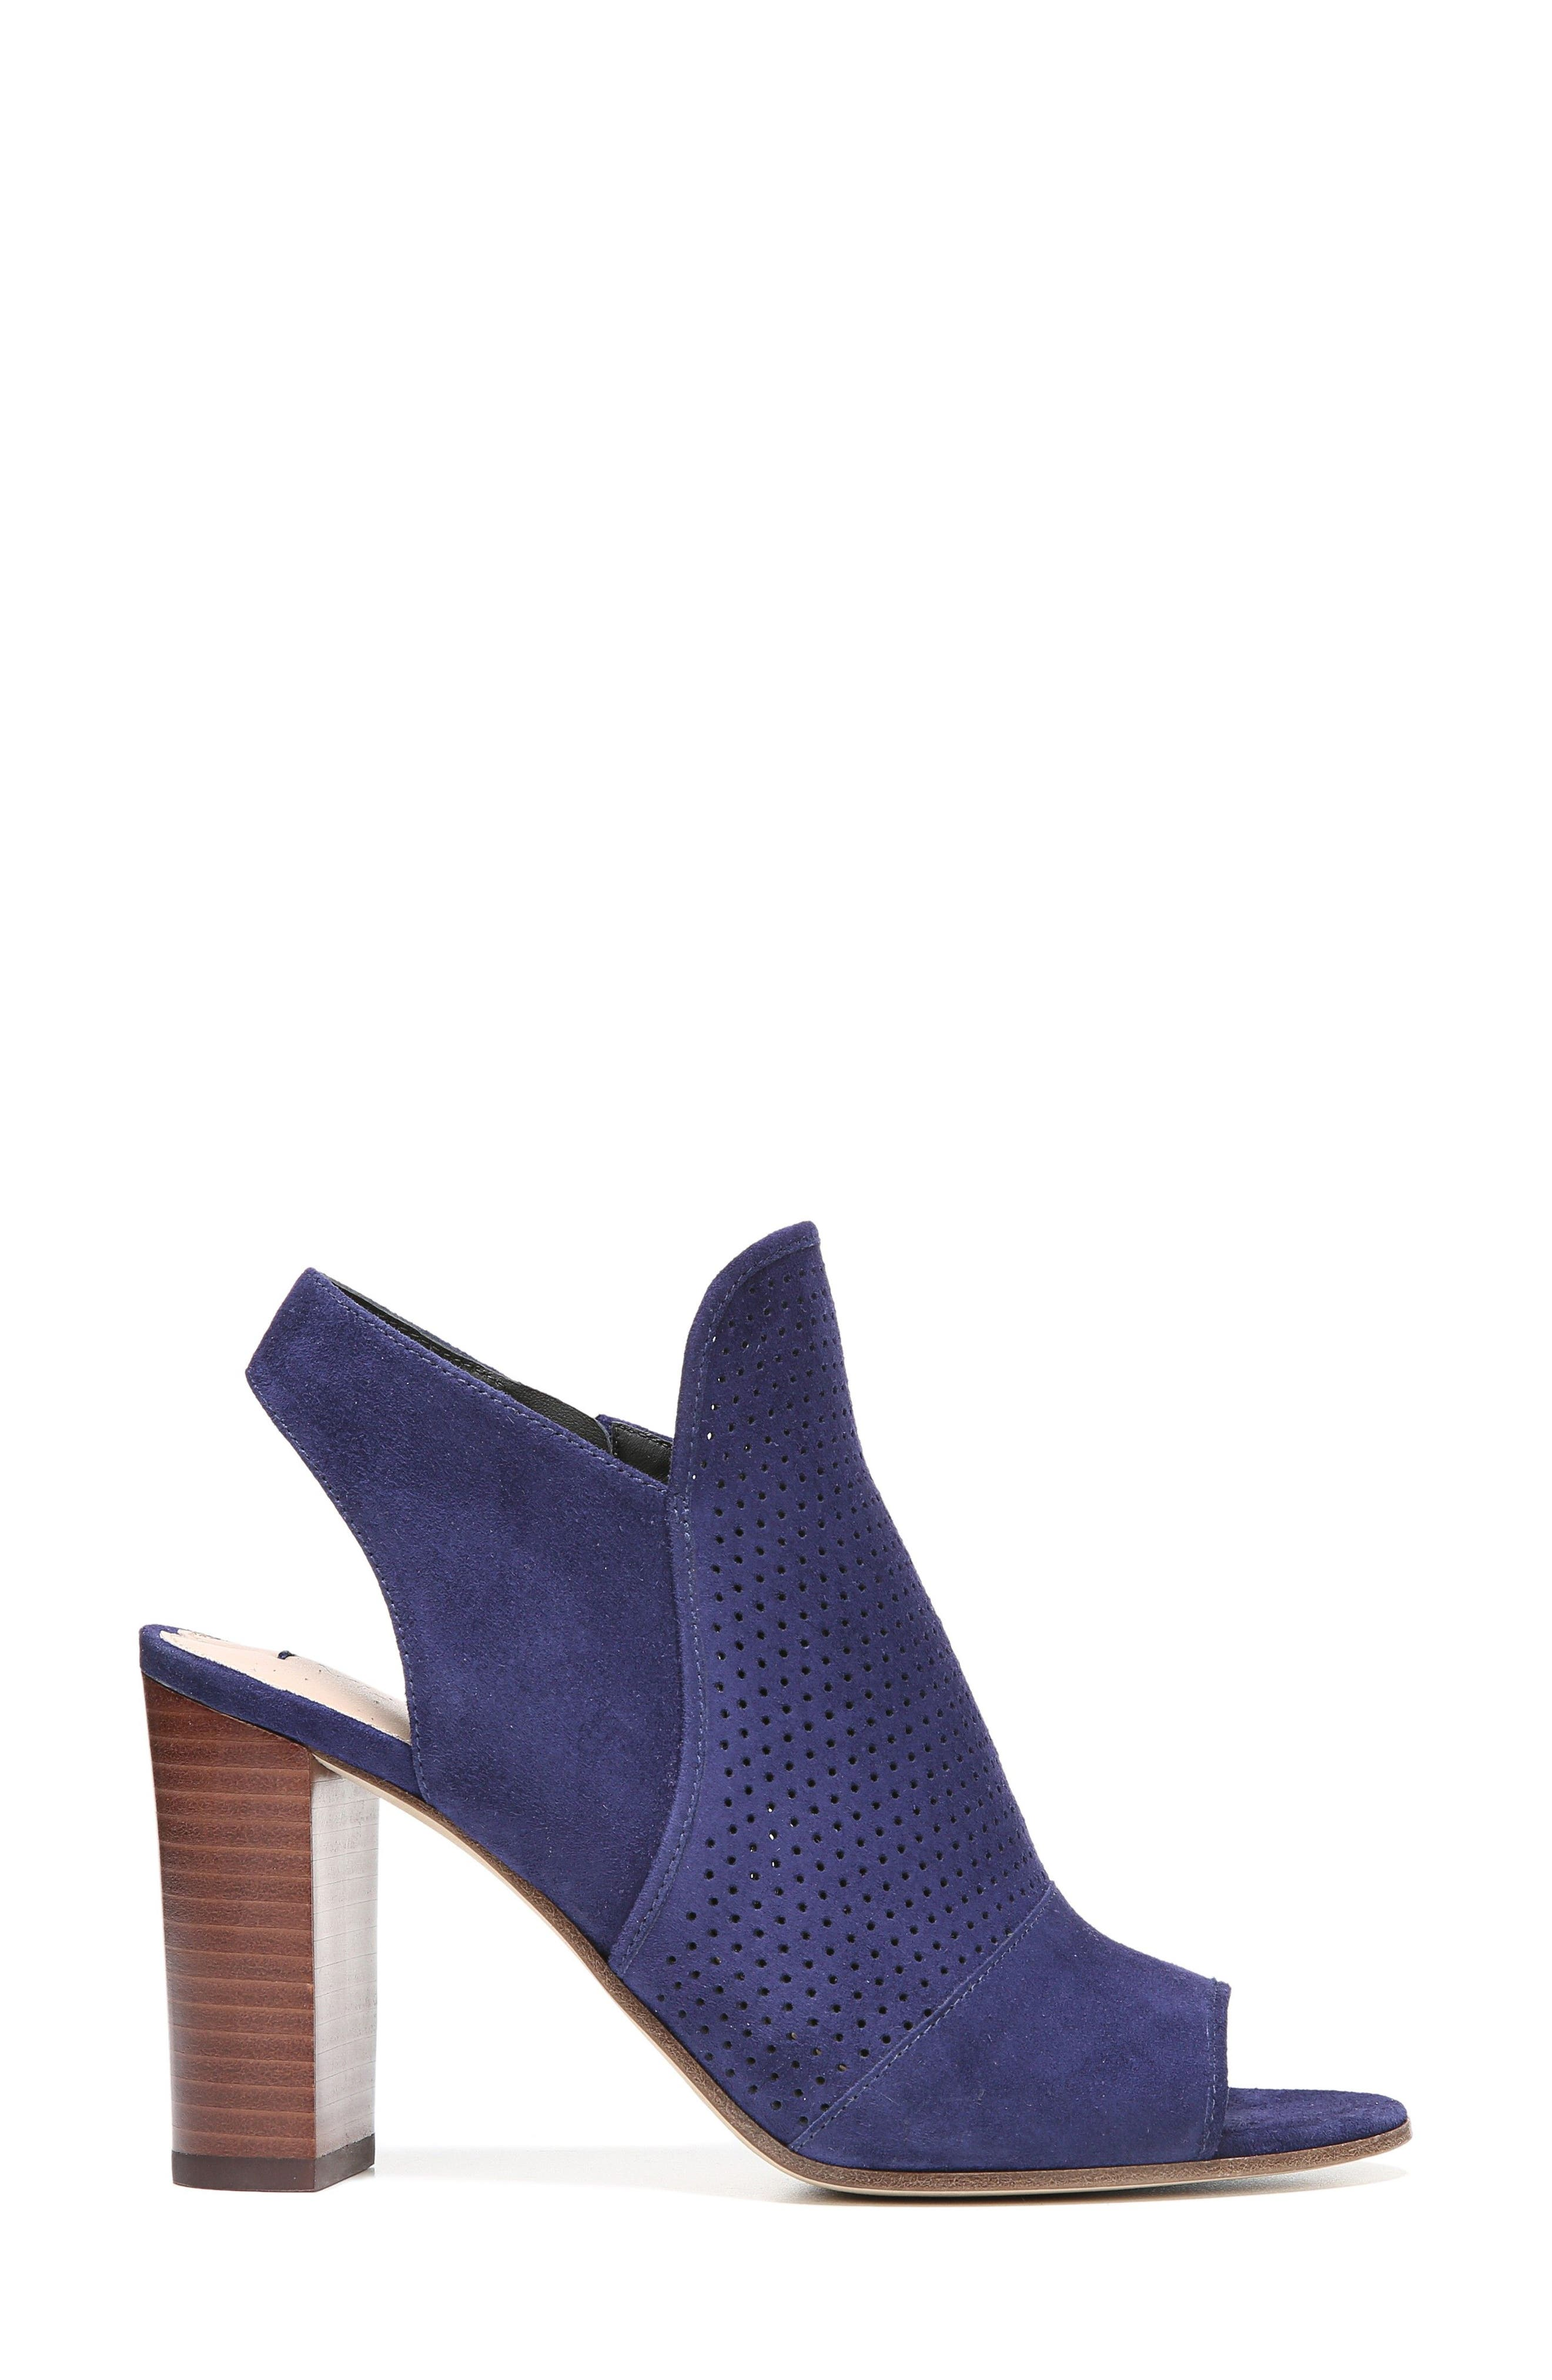 Gaze Block Heel Sandal,                             Alternate thumbnail 3, color,                             Marina Blue Suede